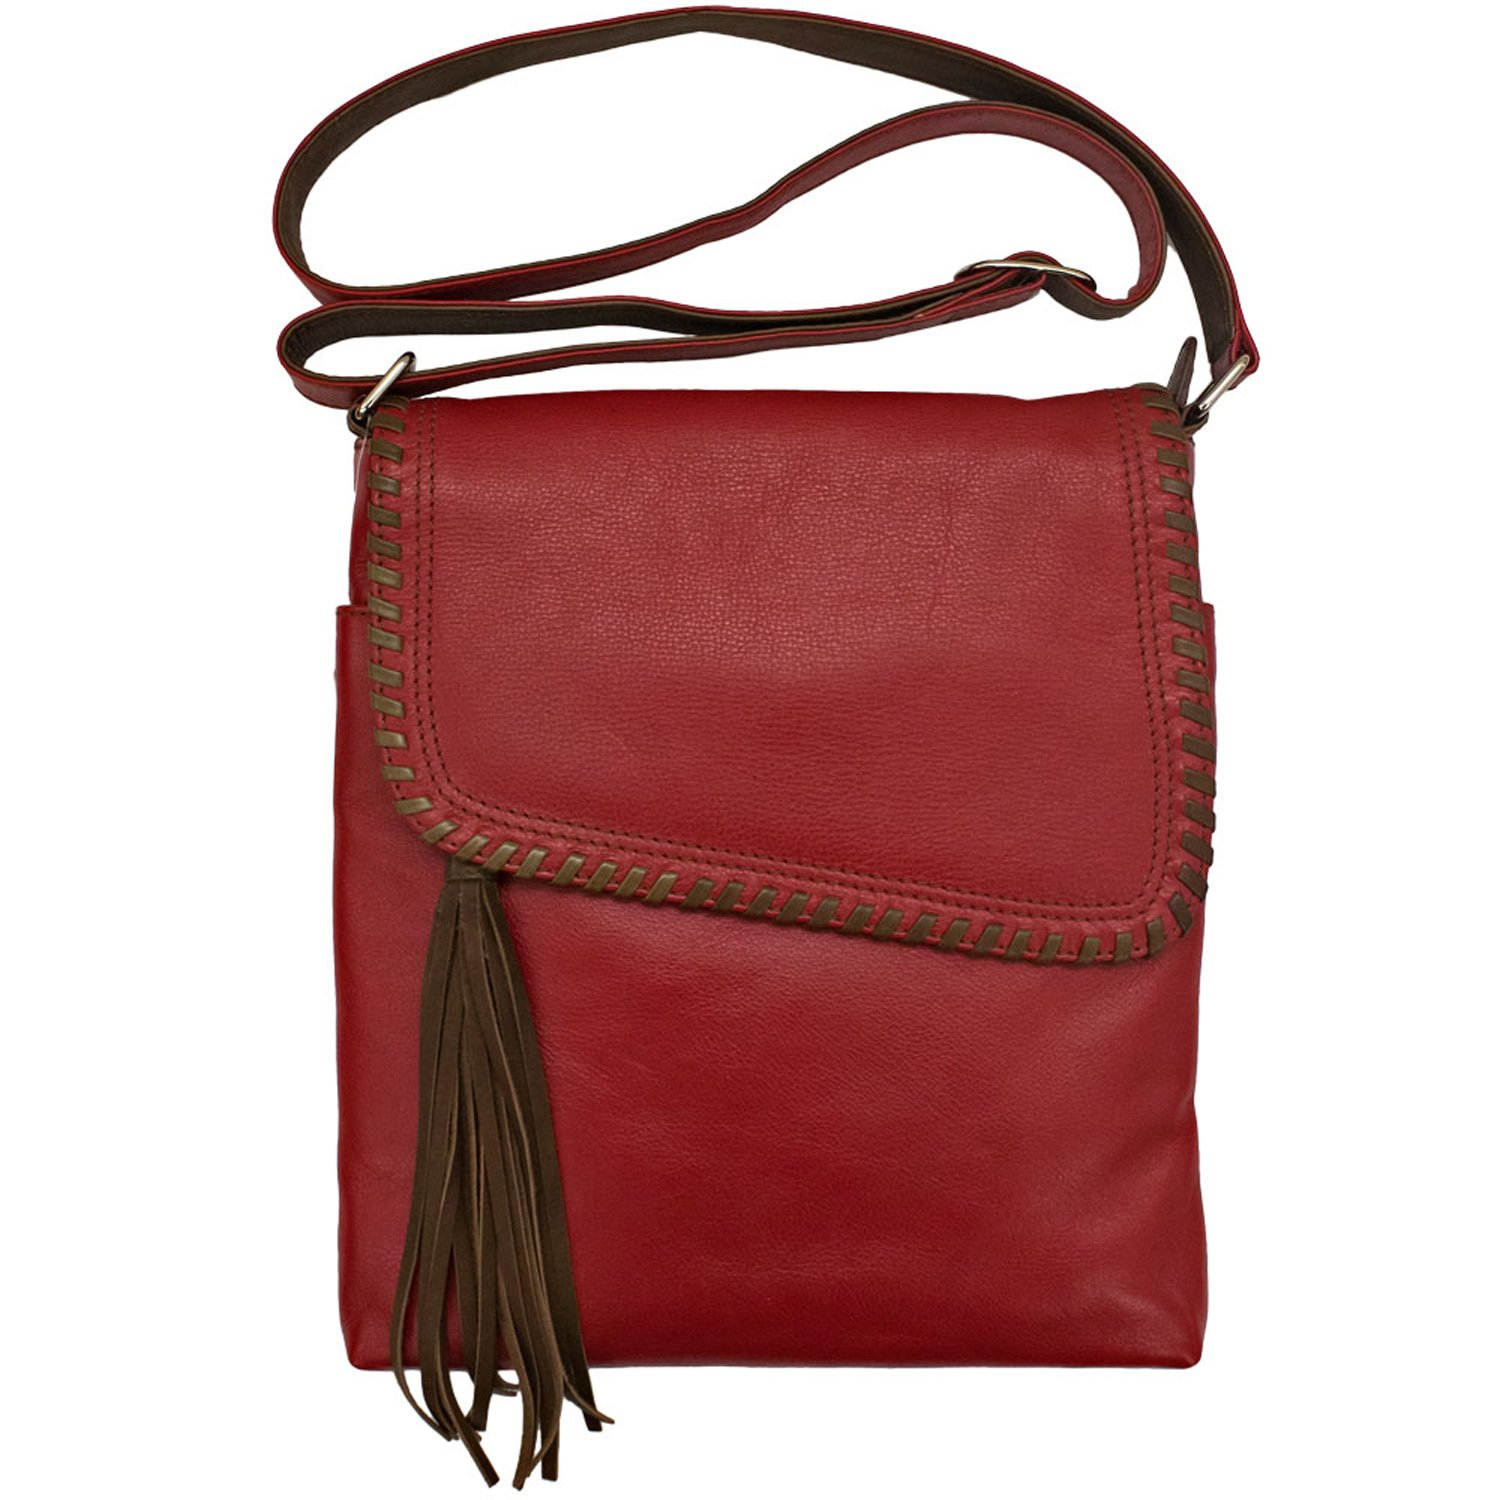 Whipstitched Leather Cross-body Handbag (Red/ Toffee)